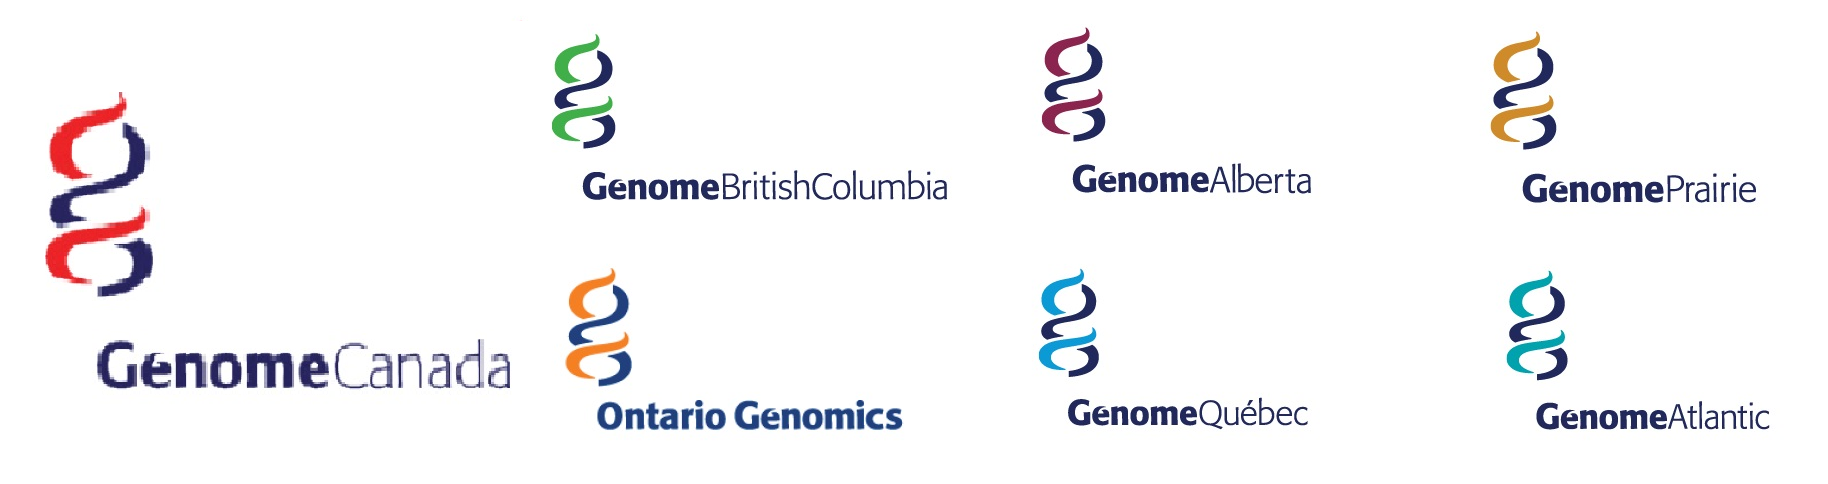 Canadian Genomics Enterprise-rectangle